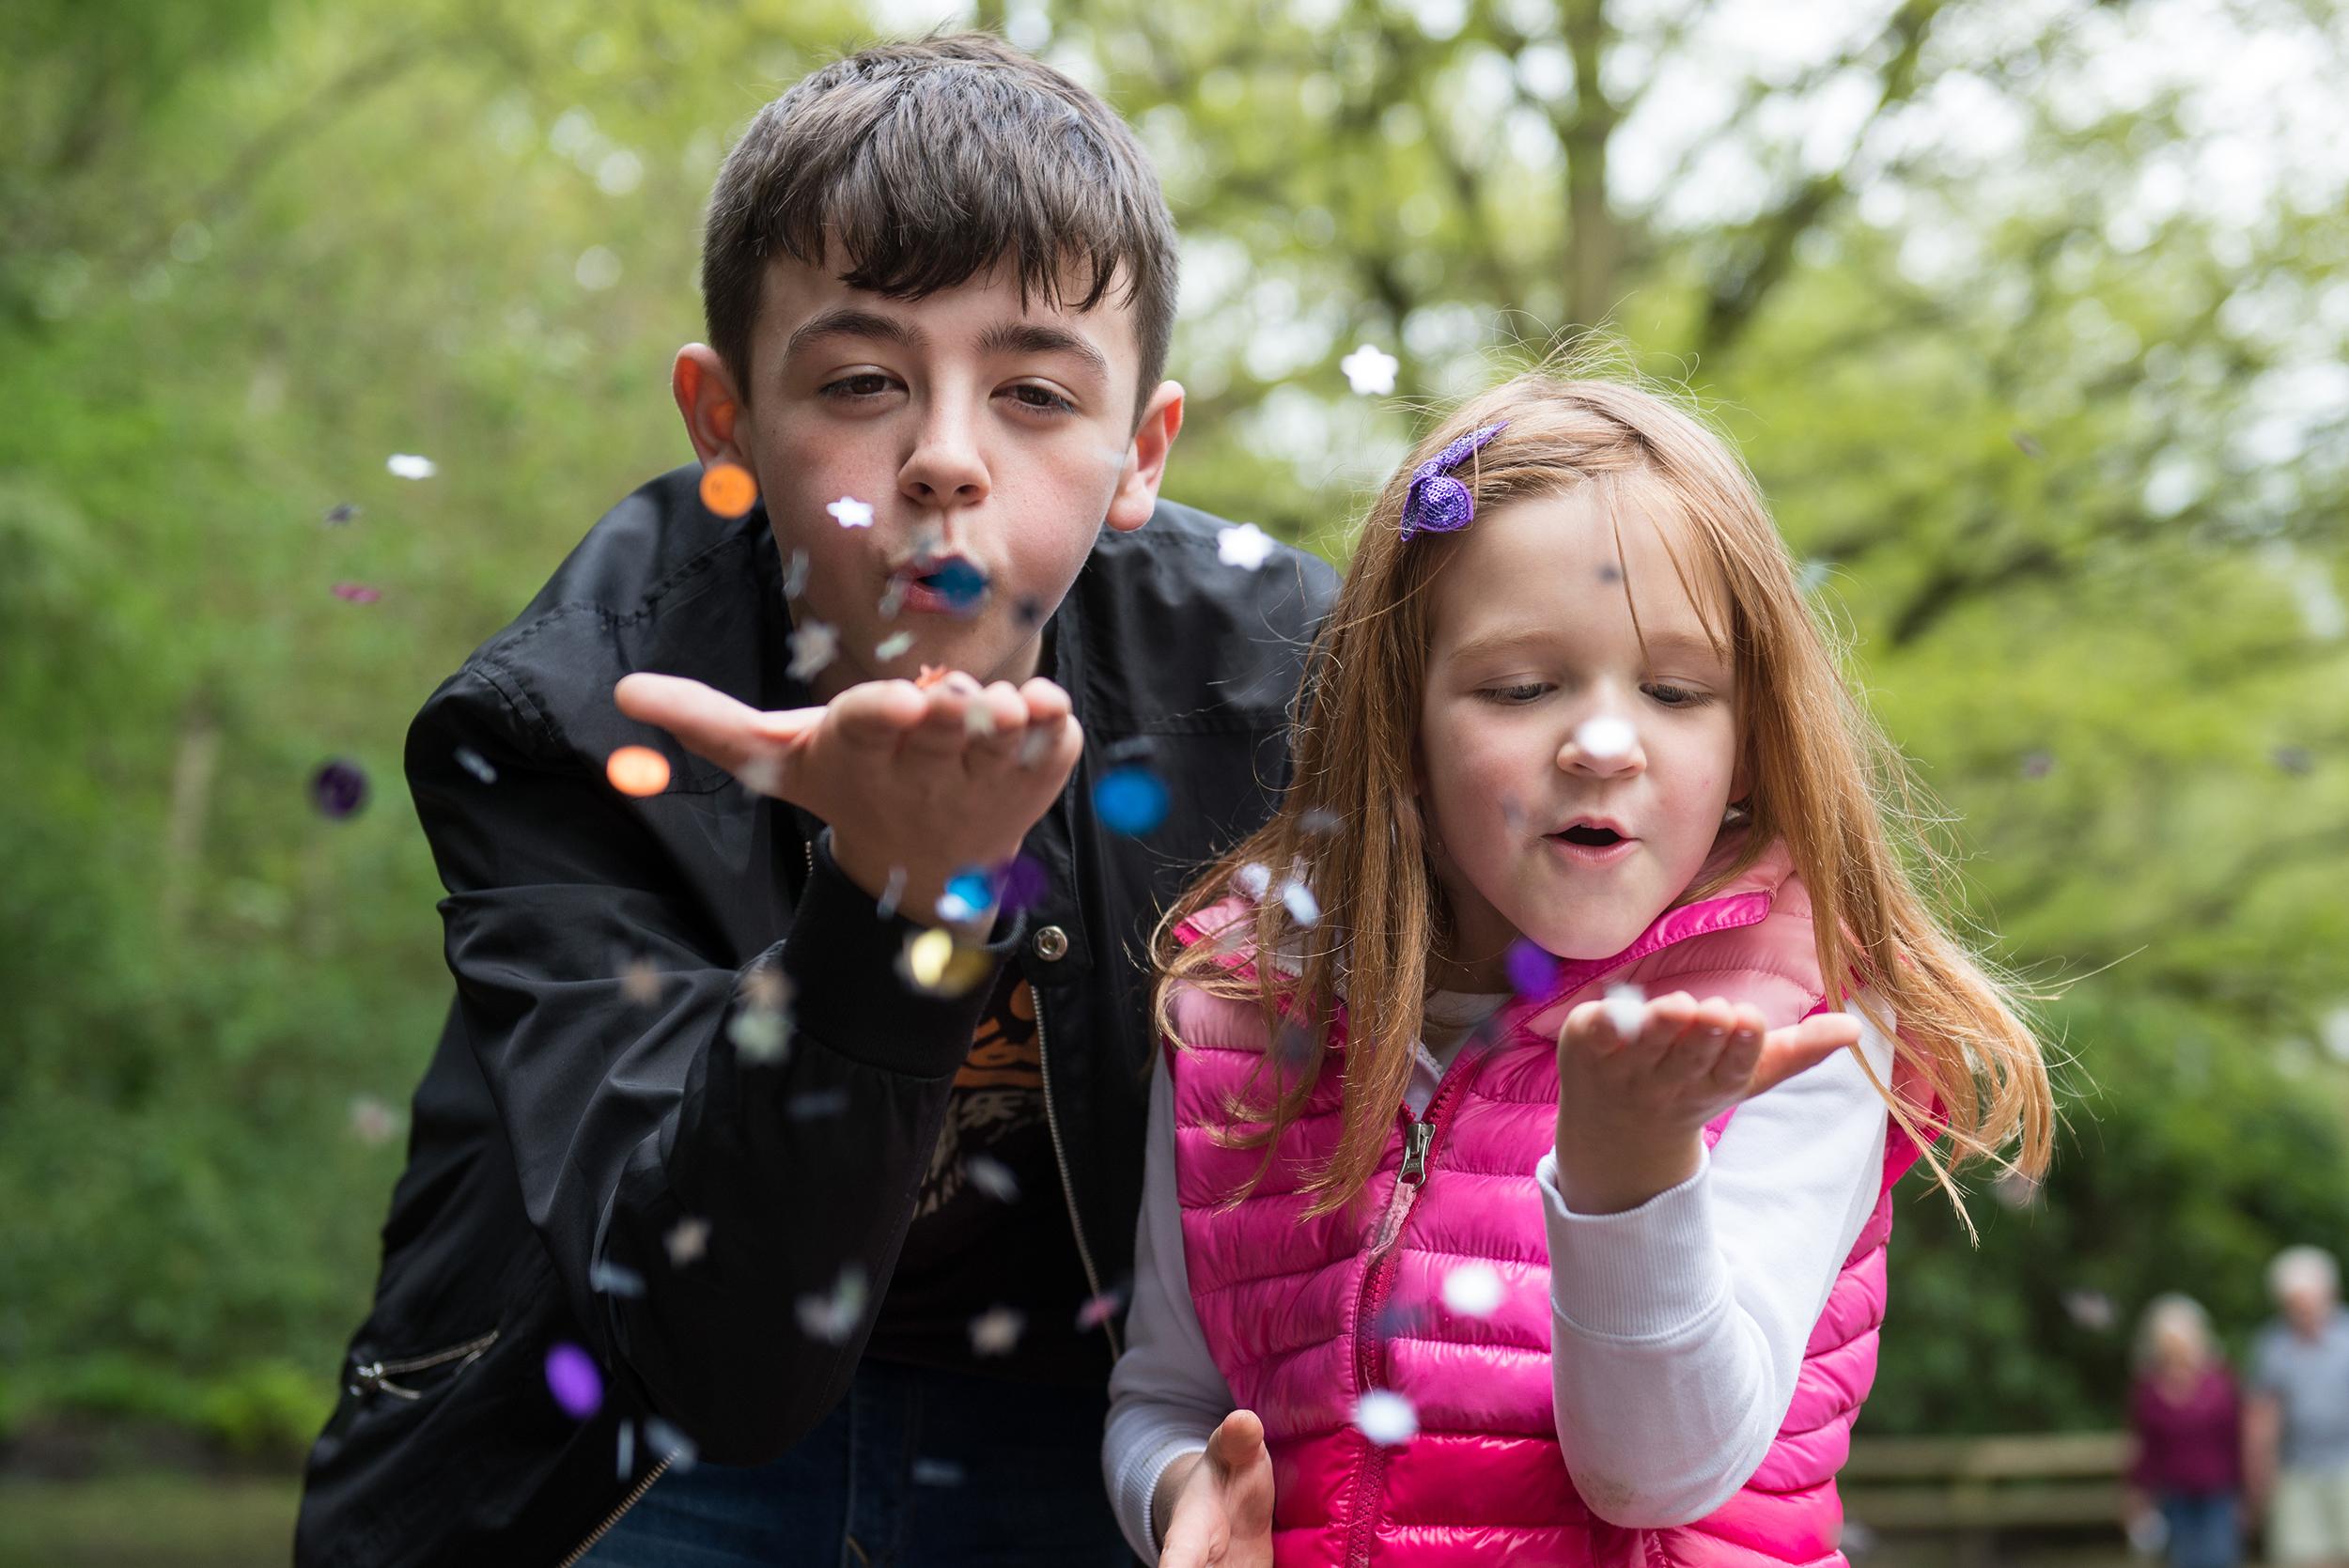 Copy of brother and siser blowing glitter in golden acre park